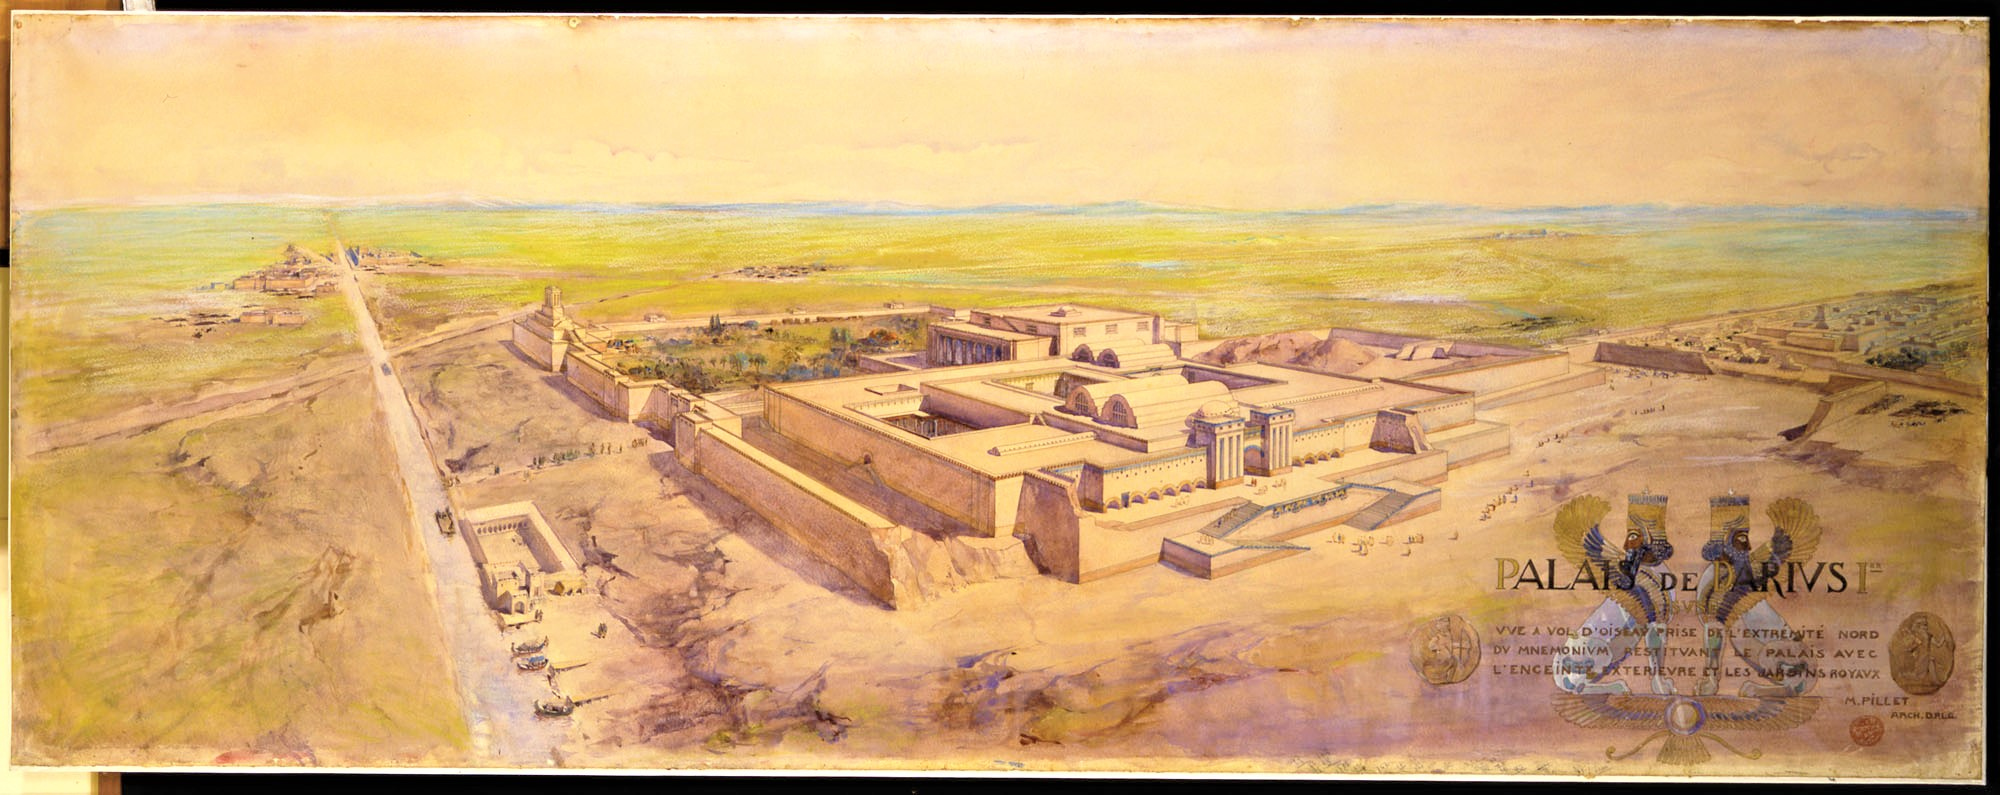 The Palace of Darius at Susa was a masterpiece of mudbrick architecture housing enormous reception halls opening to internal courtyards. Watercolour by Maurice Pillet (1913).